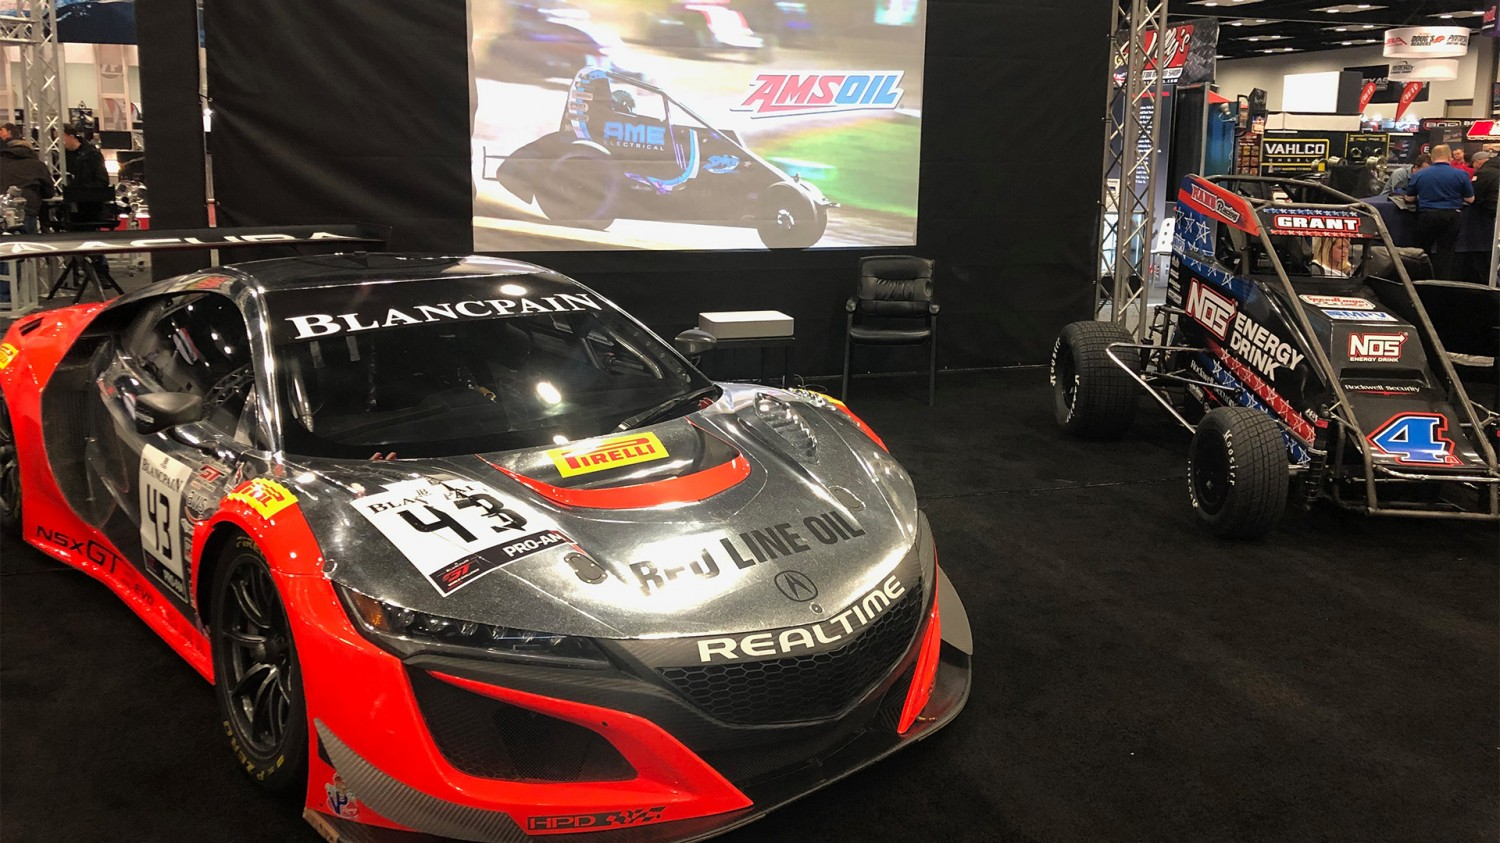 SRO America Delivers State of the Series Presentation at Performance Racing Industry Show